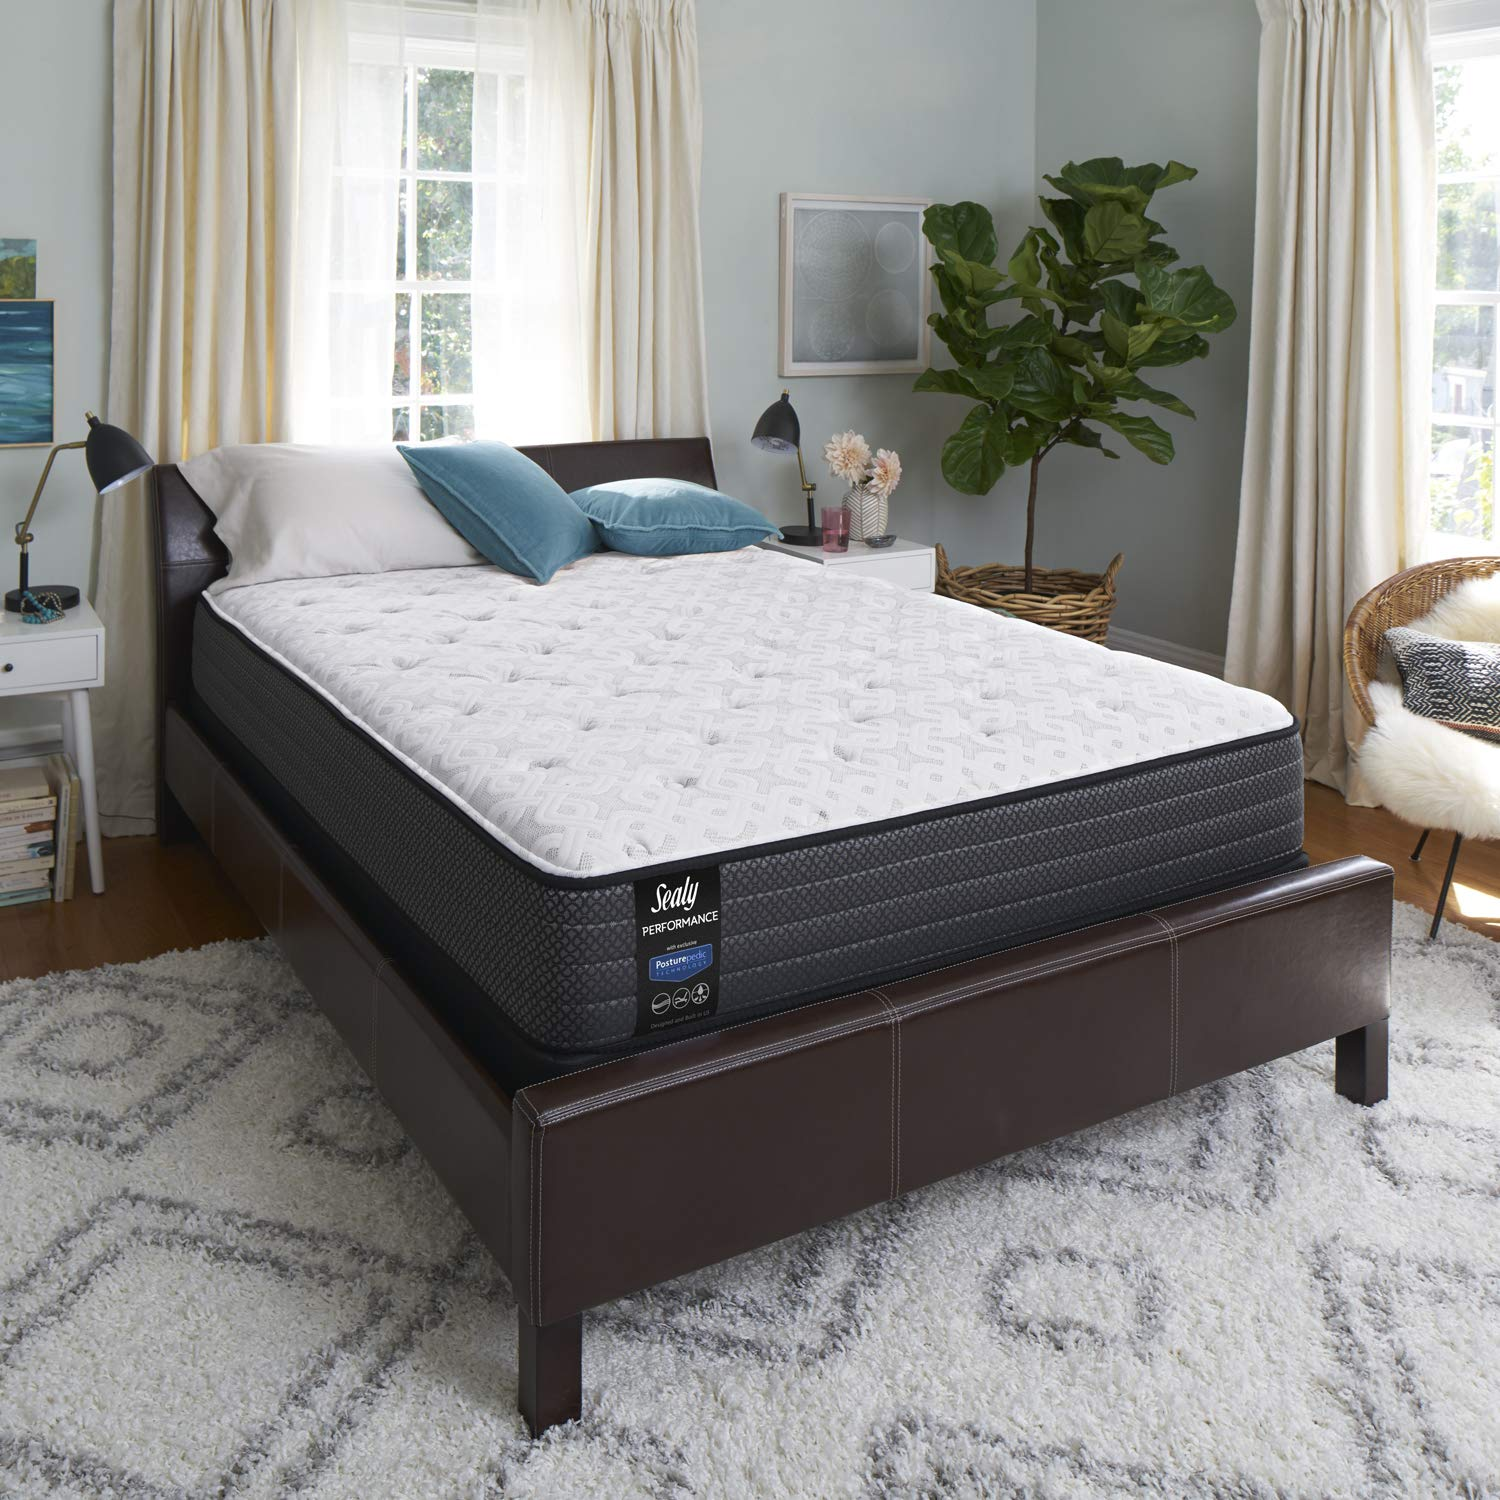 save off 0d26b 52ed8 Sealy Response Performance 11.5-Inch Plush Tight Top Mattress, Twin, Made  in USA, 10 Year Warranty